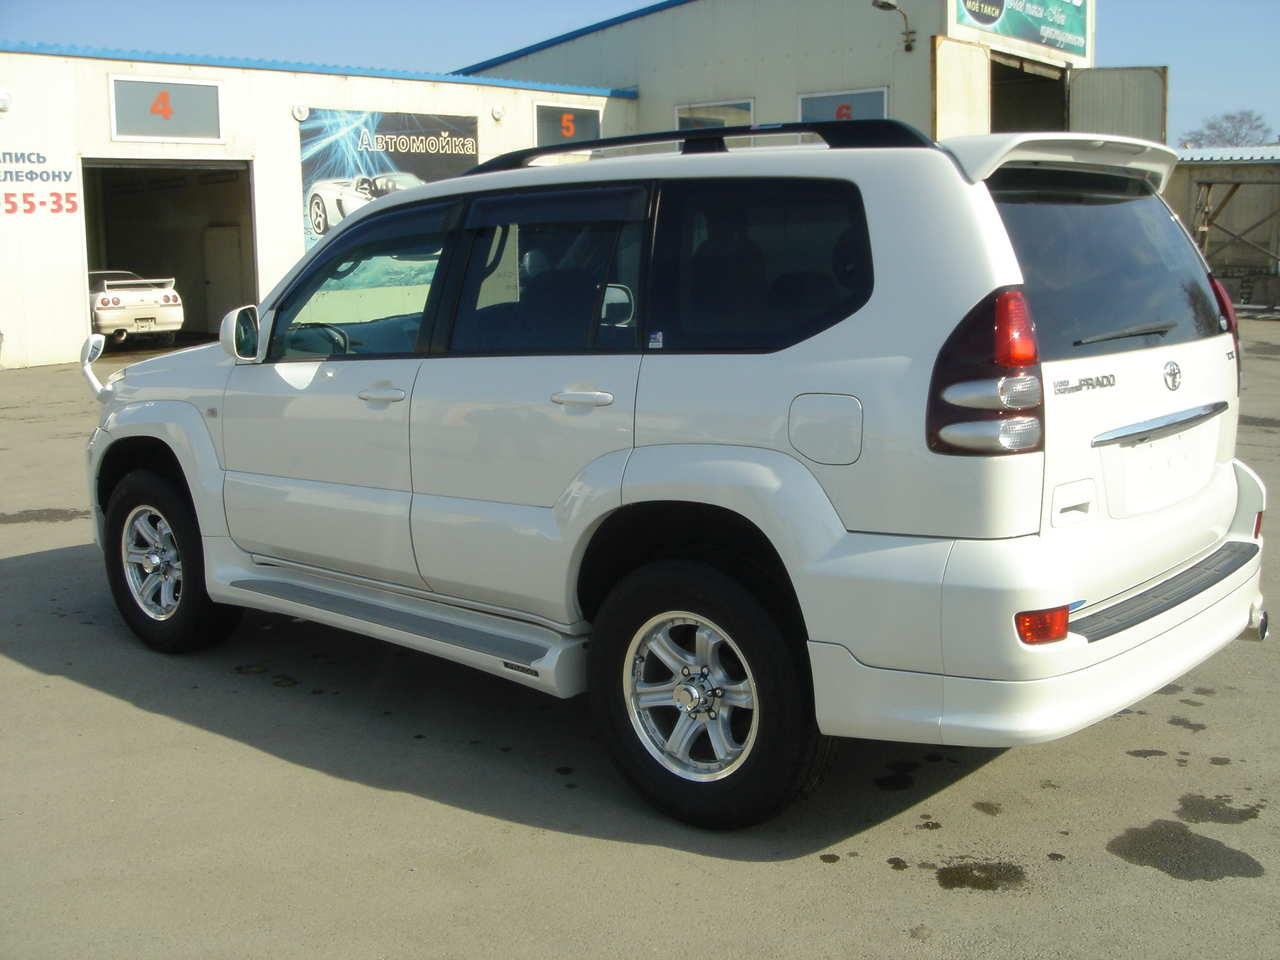 2004 toyota land cruiser prado photos 2700cc gasoline. Black Bedroom Furniture Sets. Home Design Ideas